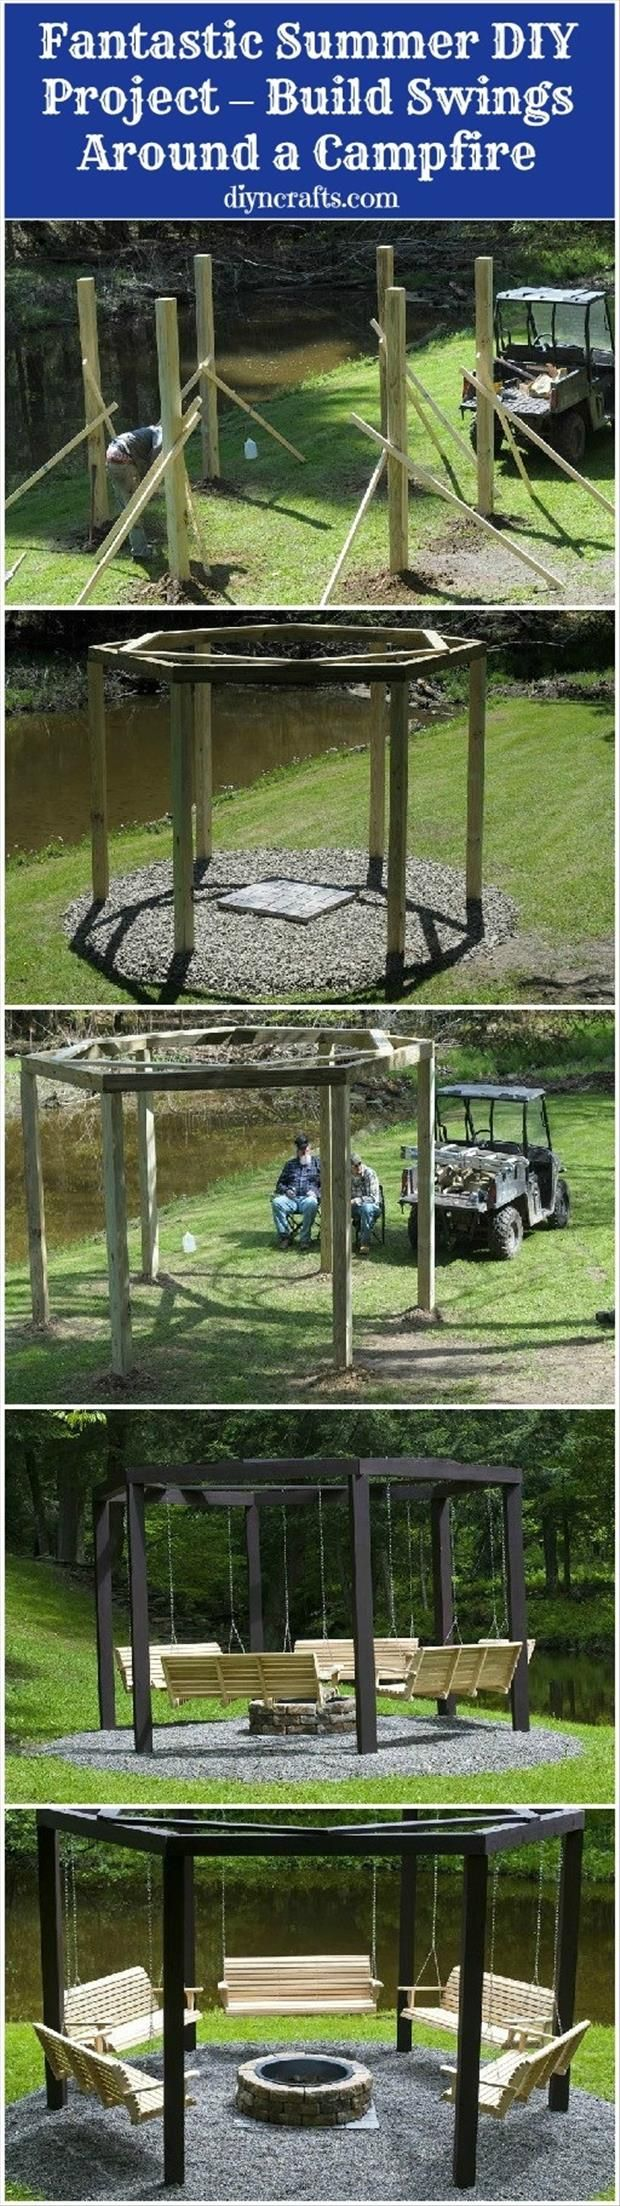 I think I found a project for us this summer:)